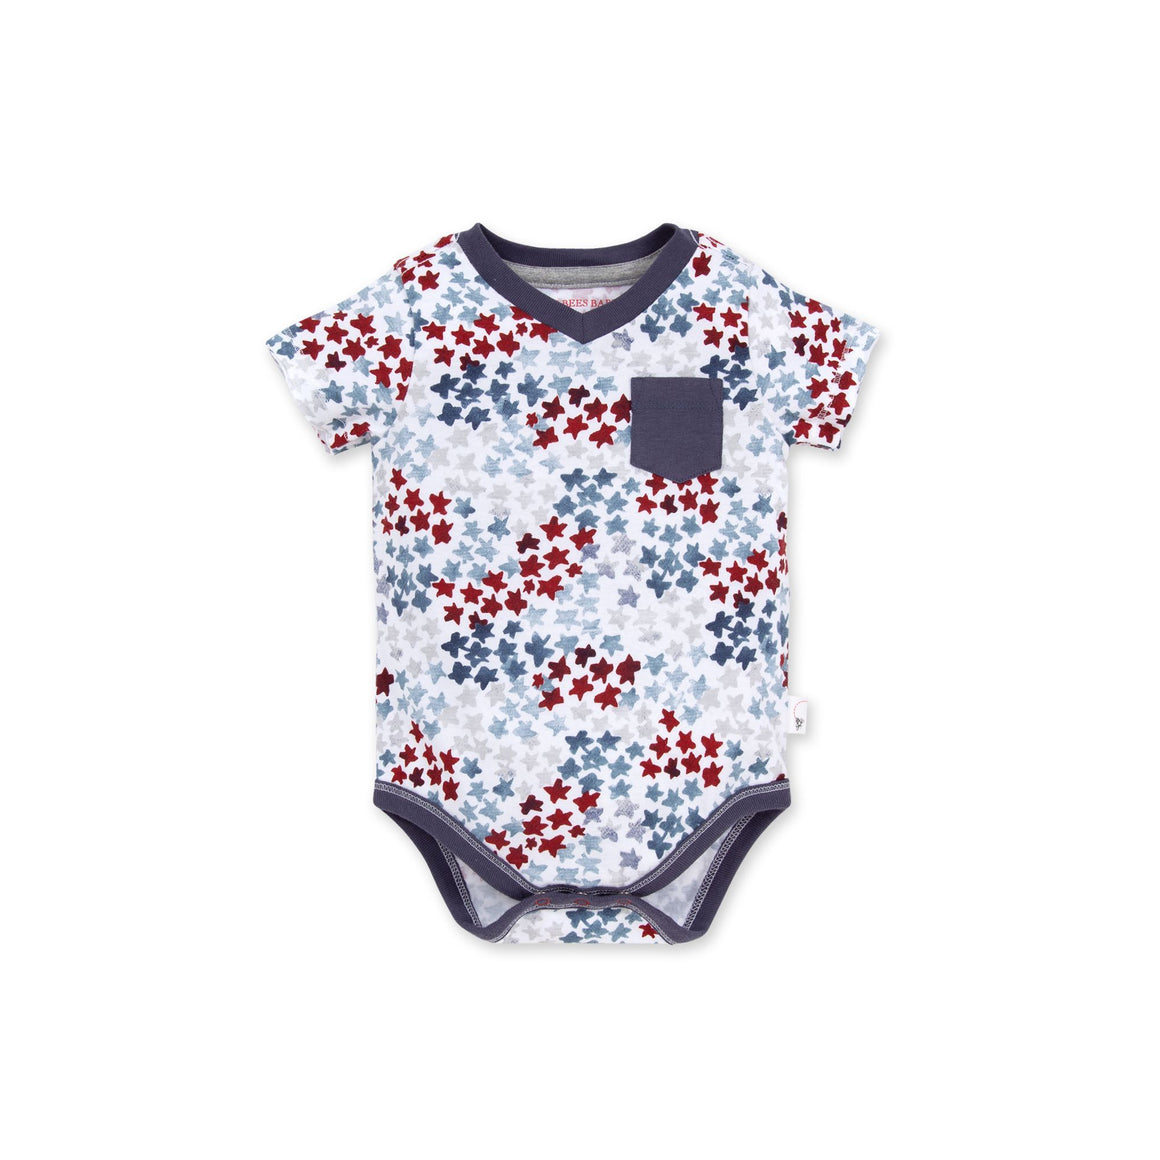 LY26916 -Burt's Bee Baby Starry Night Sky Organic Bodysuit - Blue Smoke Onesie Burt's Bees Baby